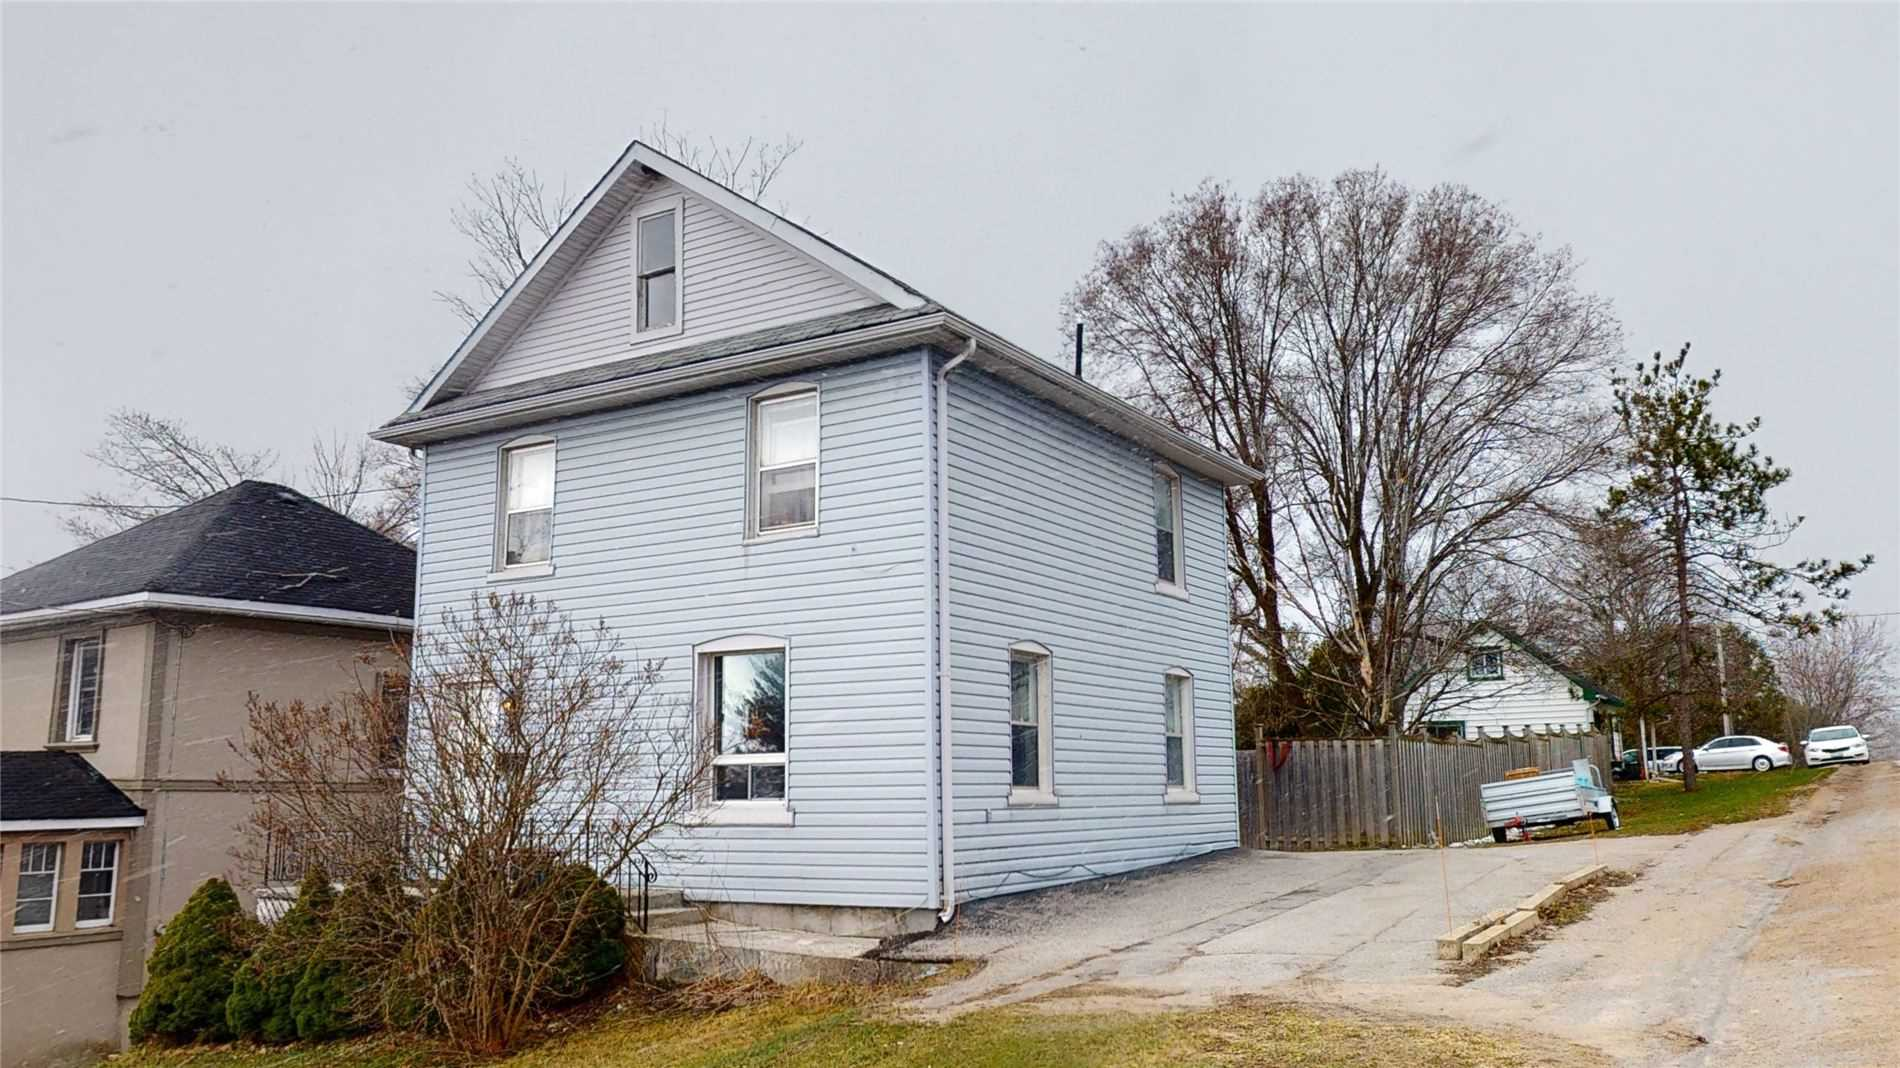 pictures of house for sale MLS: S4744181 located at 2 Clinton St, Orillia L3V6A1